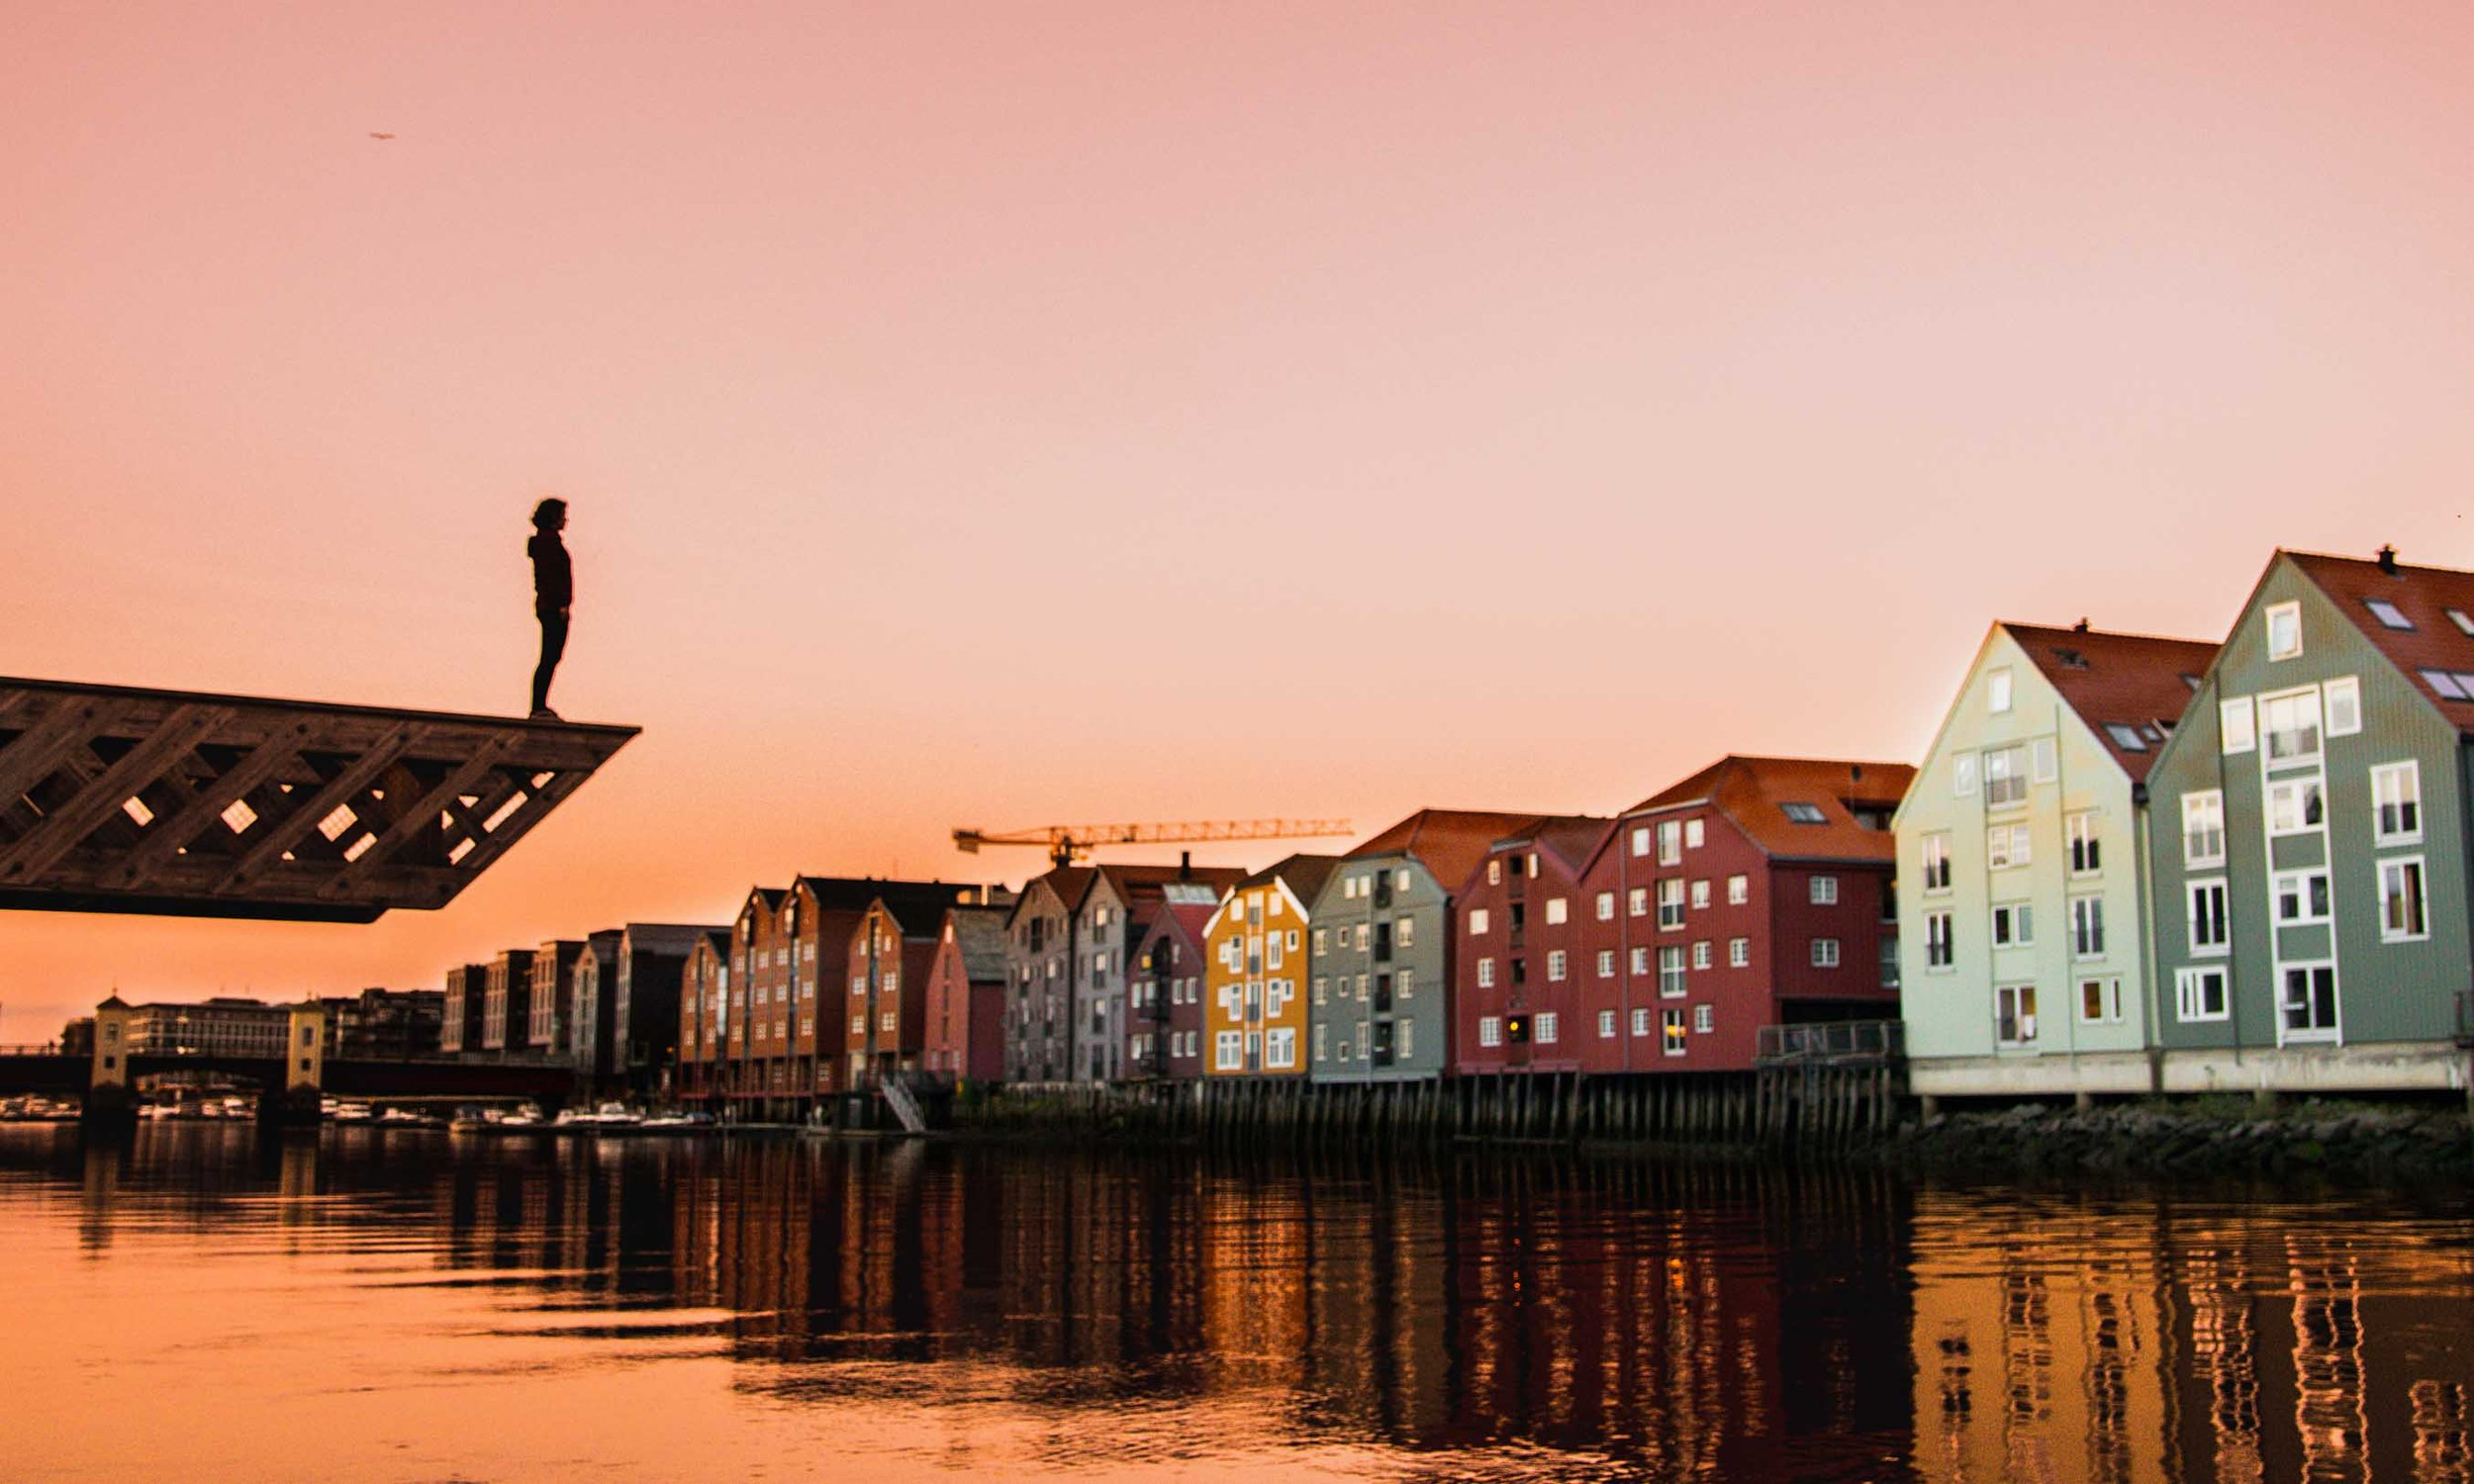 - With a population of 193,000, Trondheim is not a big city on a European scale. However, it is the third largest in Norway. While maybe most known for Nidarosdomen cathedral, try working in Trondheim and you will find it easy to connect with smart people across many industries. The Norwegian city's many coworking spaces and incubators that have popped up over the past few years have made it easy for innovative and creative types to connect with one another and establish themselves.